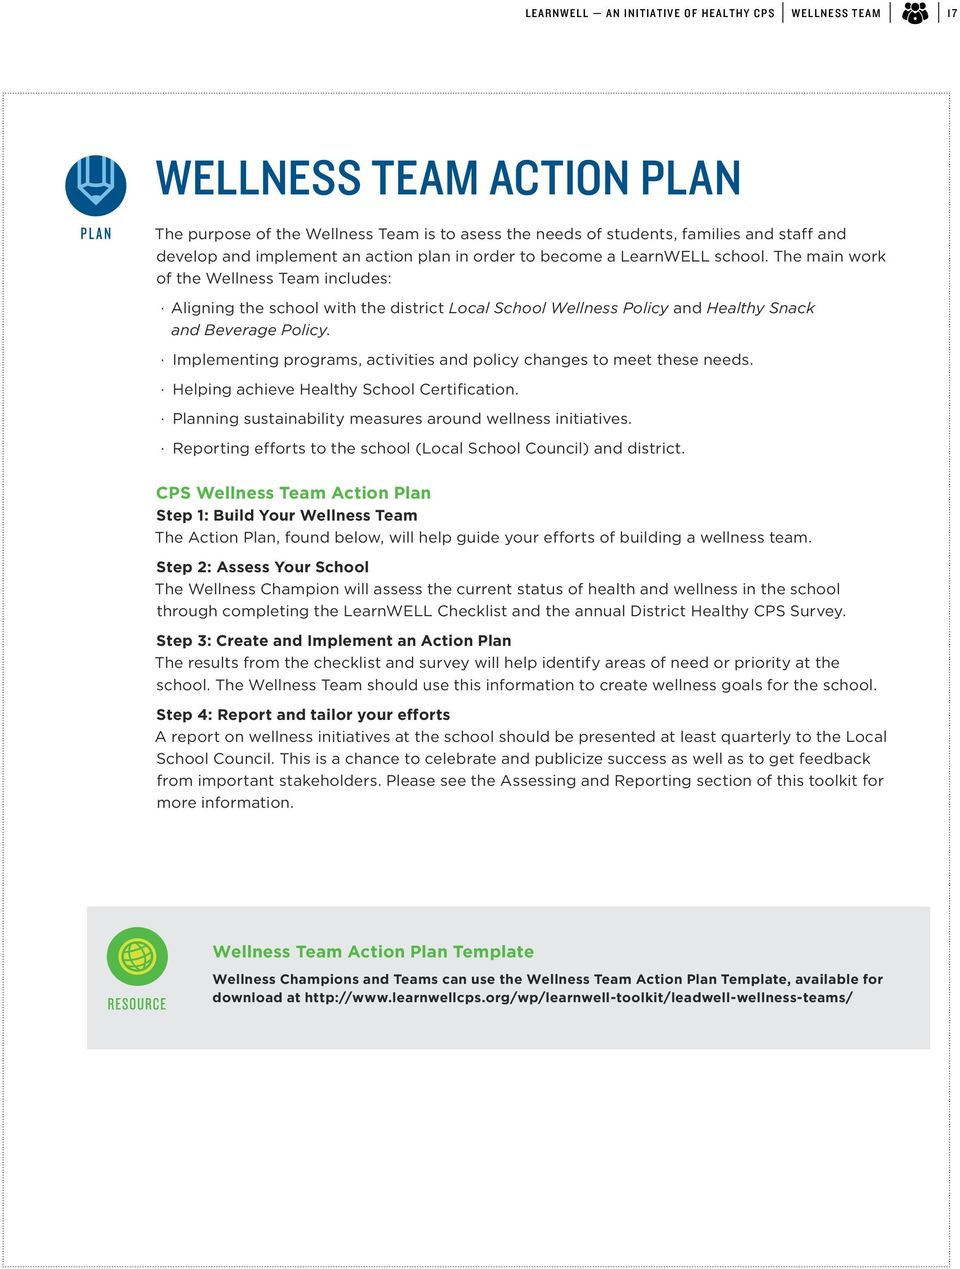 Implementing programs, activities and policy changes to meet these needs. Helping achieve Healthy School Certification. Planning sustainability measures around wellness initiatives.